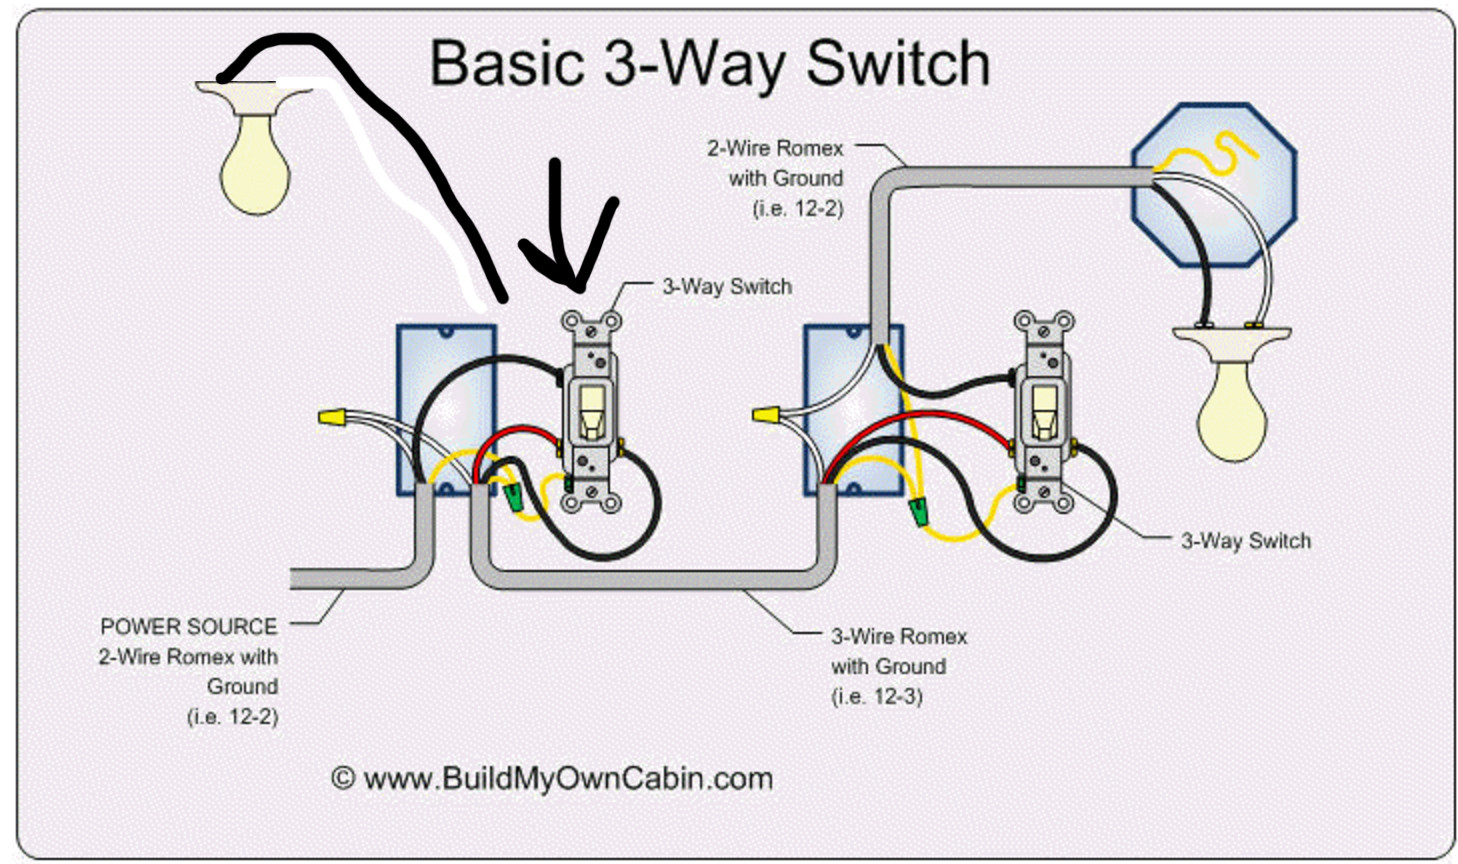 3 Way Switch Power And Light In Same Box - Ivoiregion